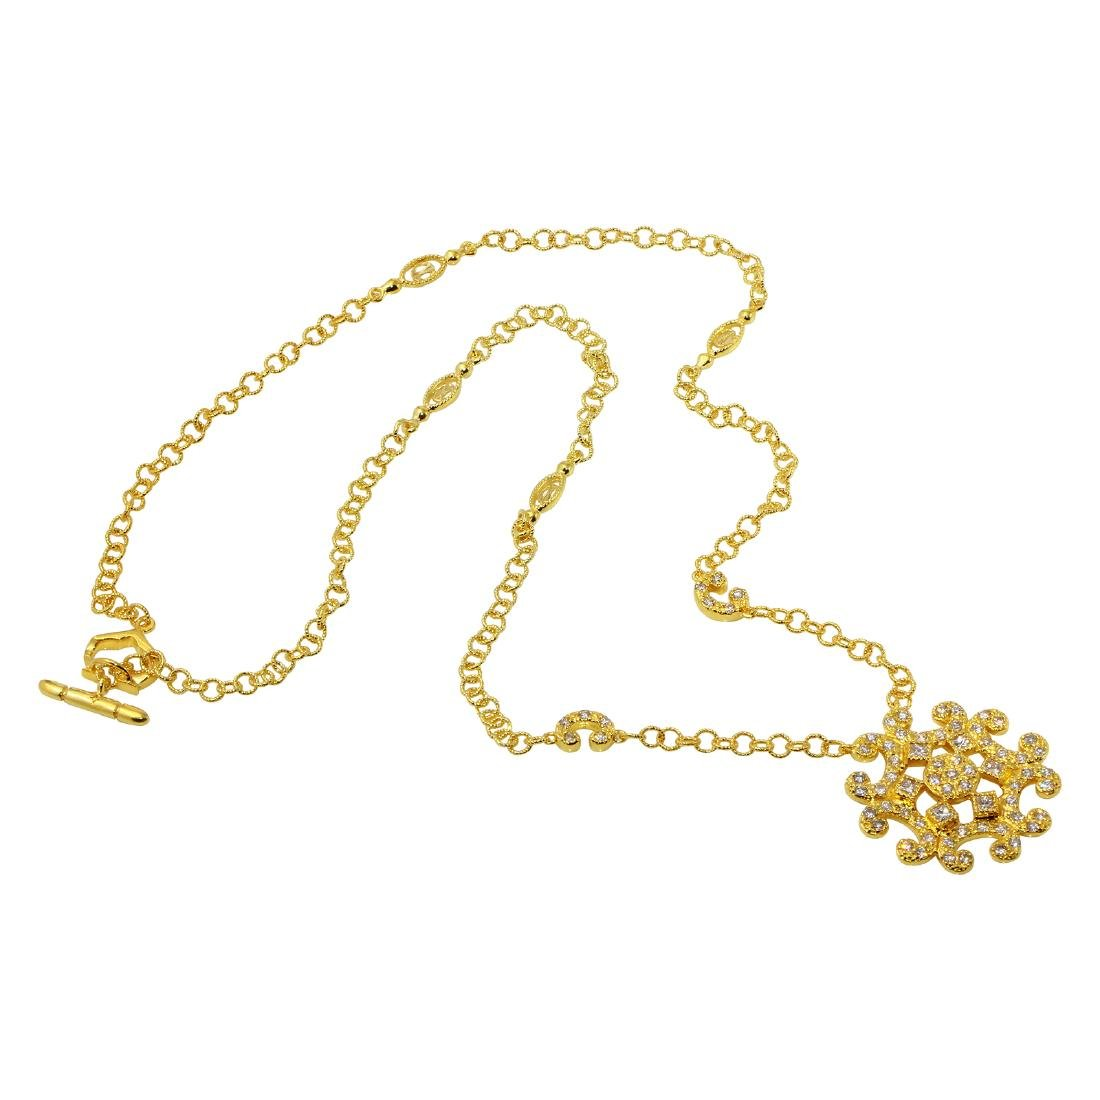 Philippe Charriol 18KT Yellow Gold Diamond Necklace - 2